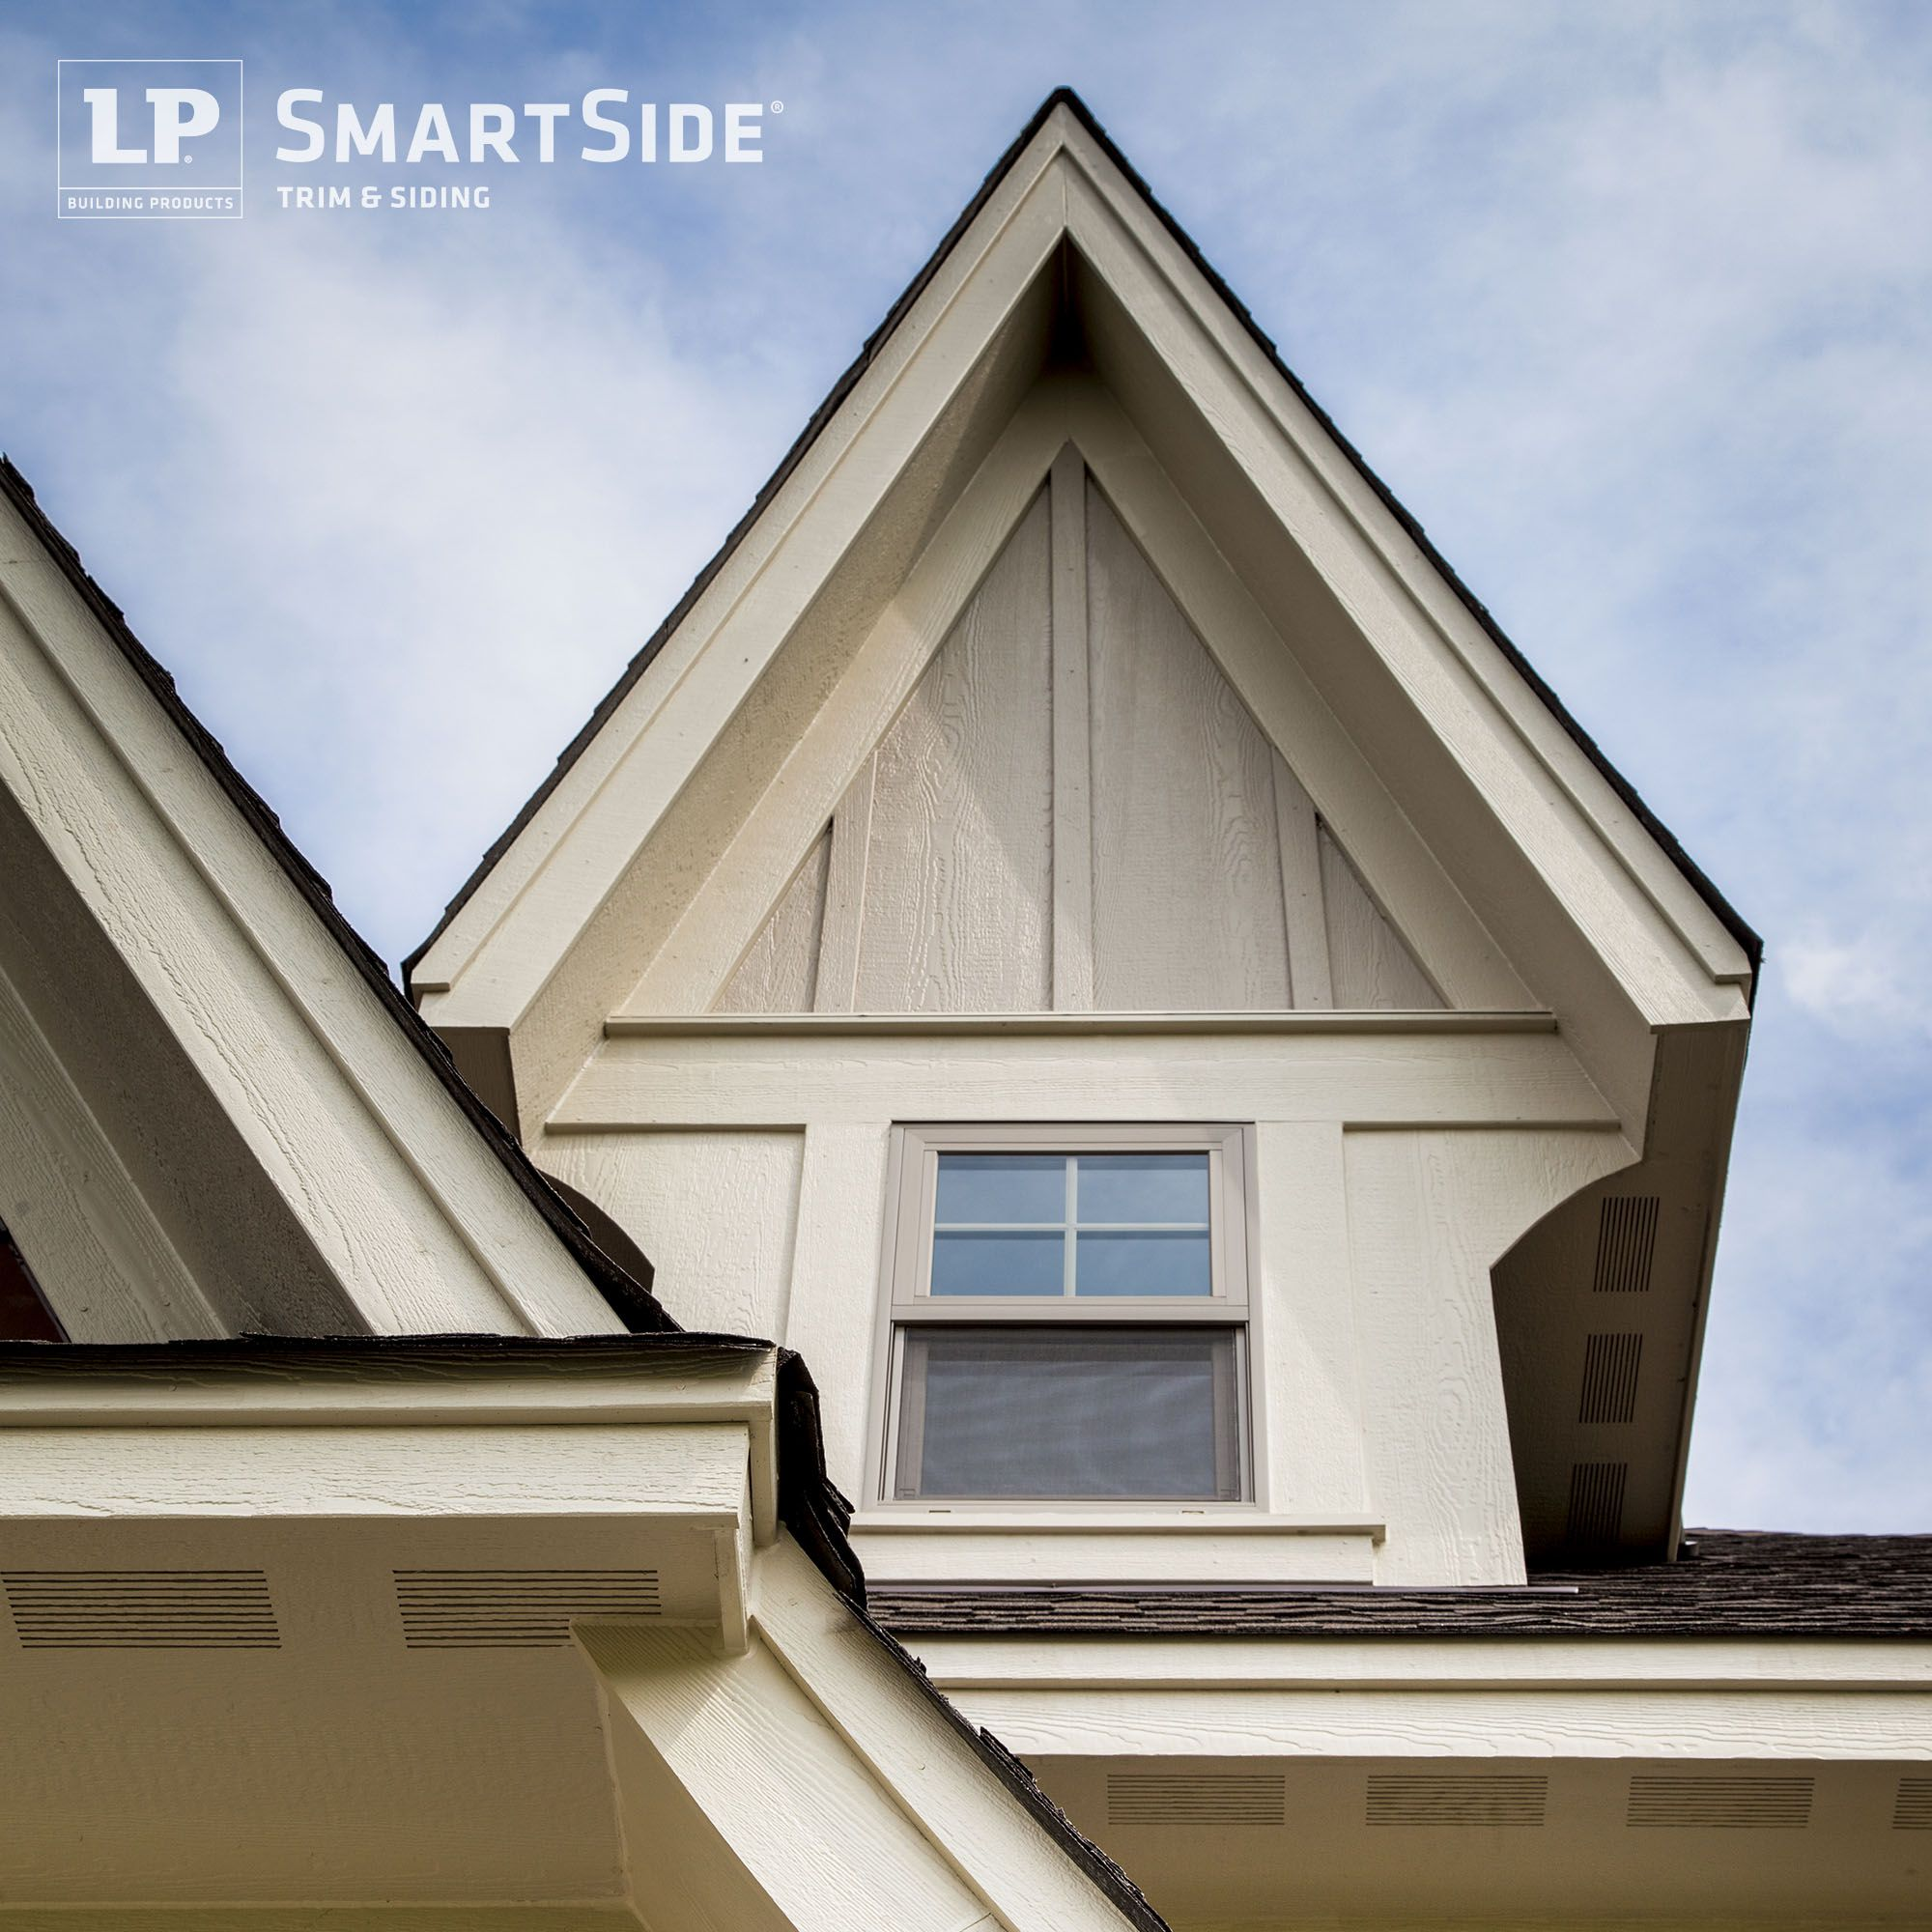 Lp smartside trim soffit and panel siding form a dynamic for Lp smartside color strand